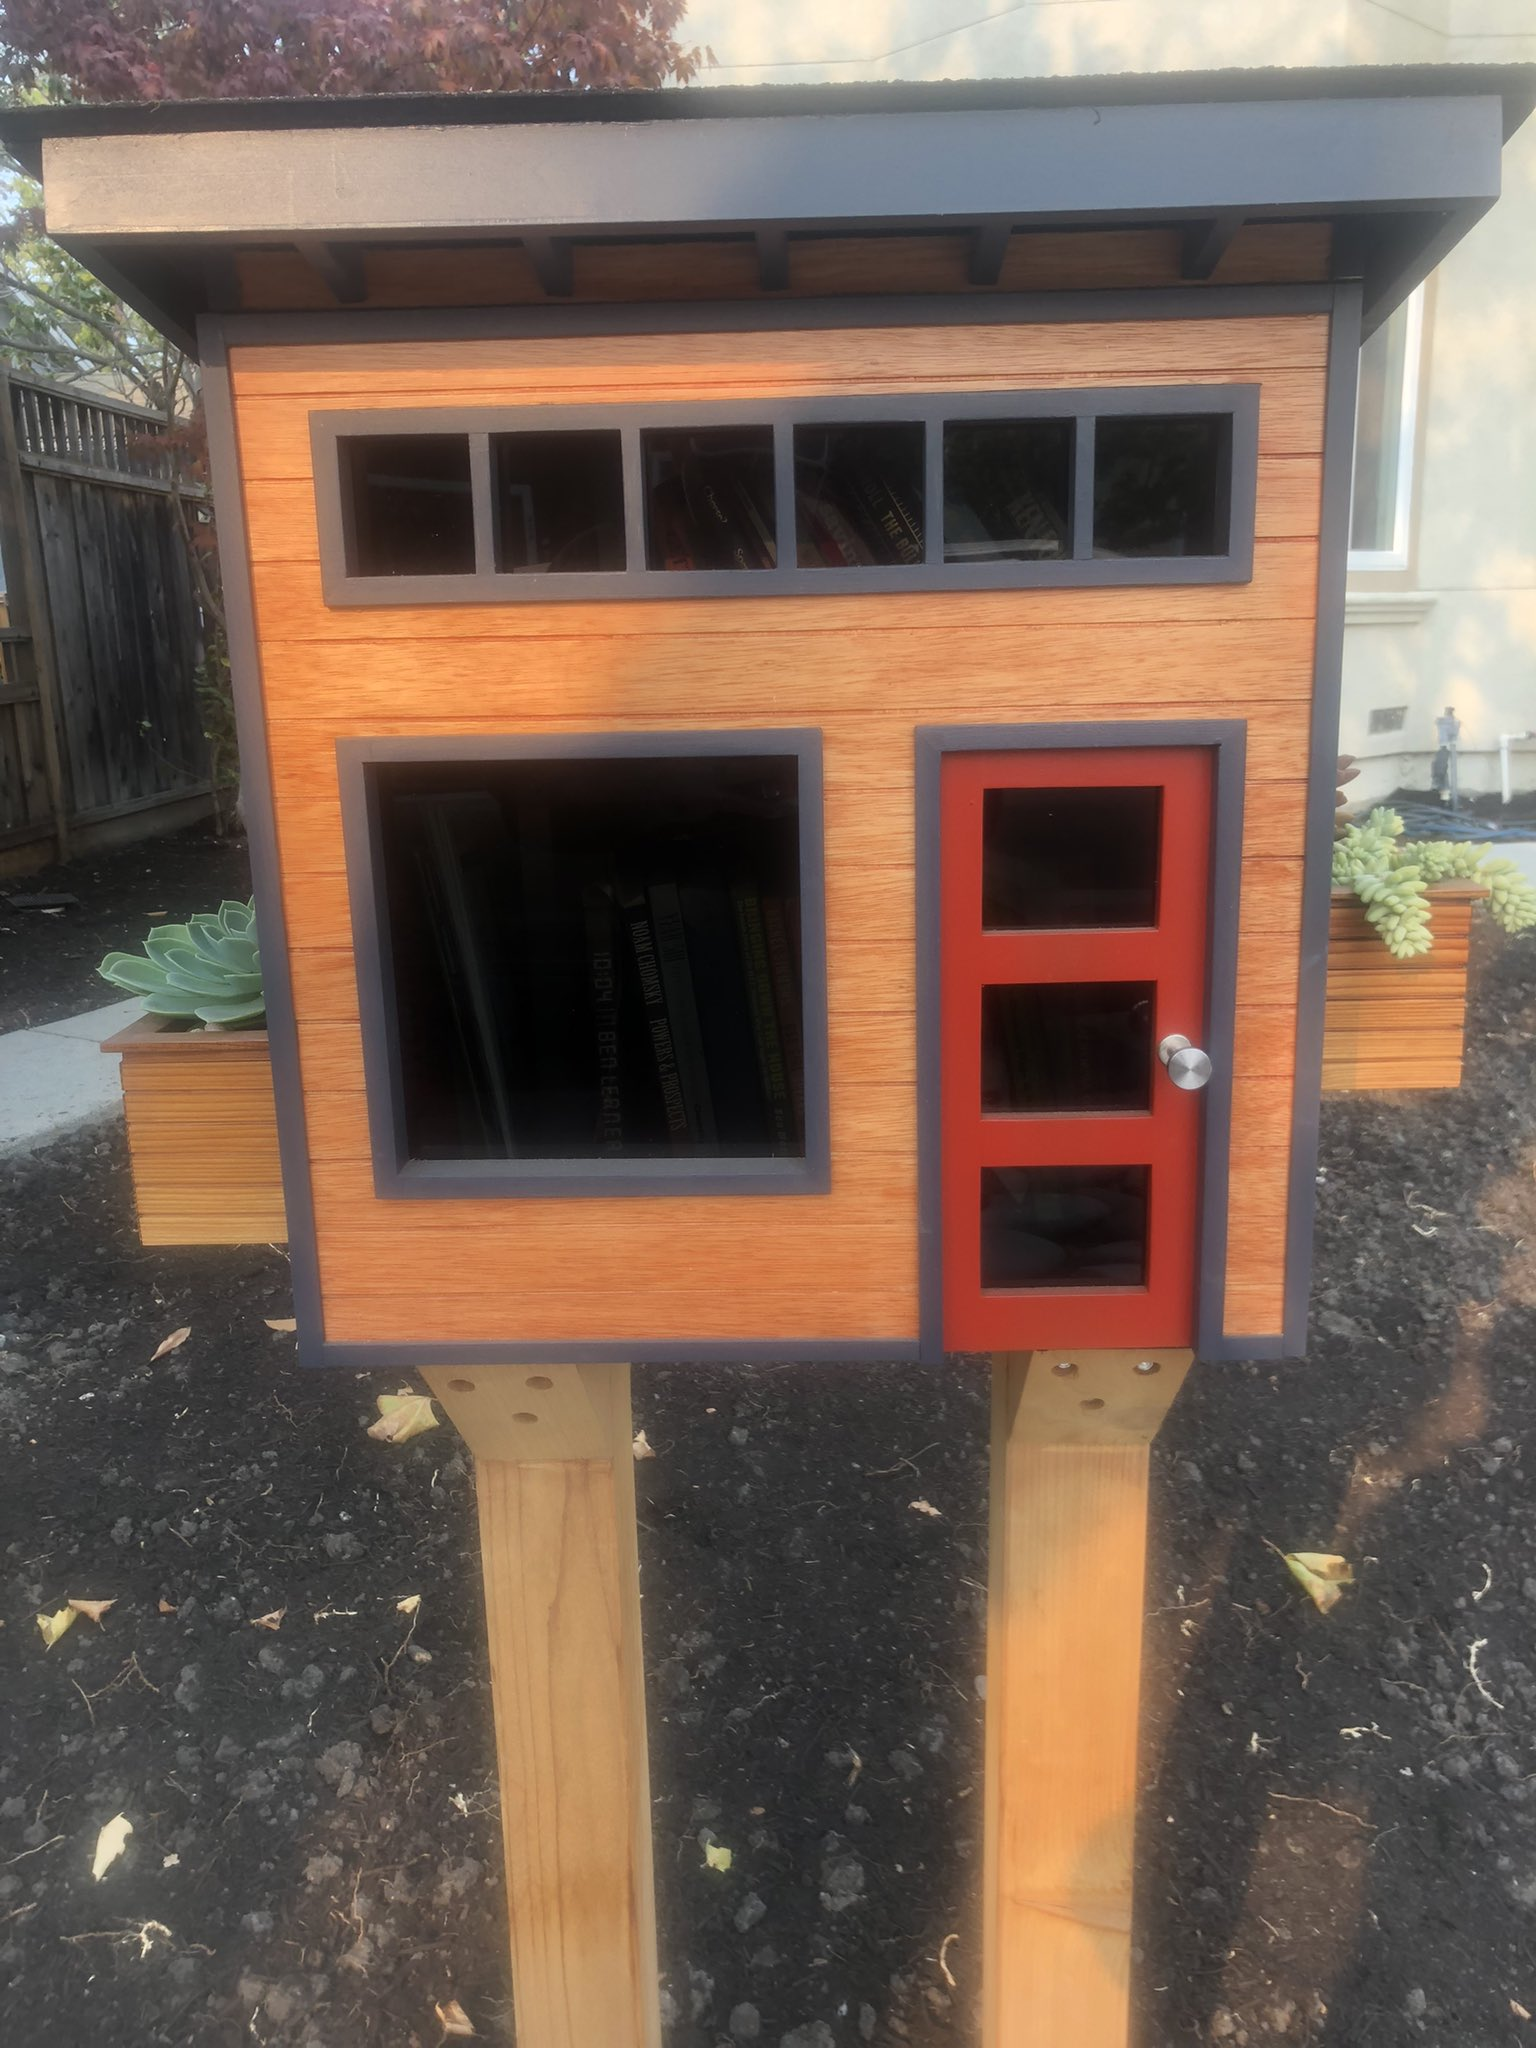 This is the nicest #littlelibrary in my neighborhood https://t.co/Cs6qpD0dve